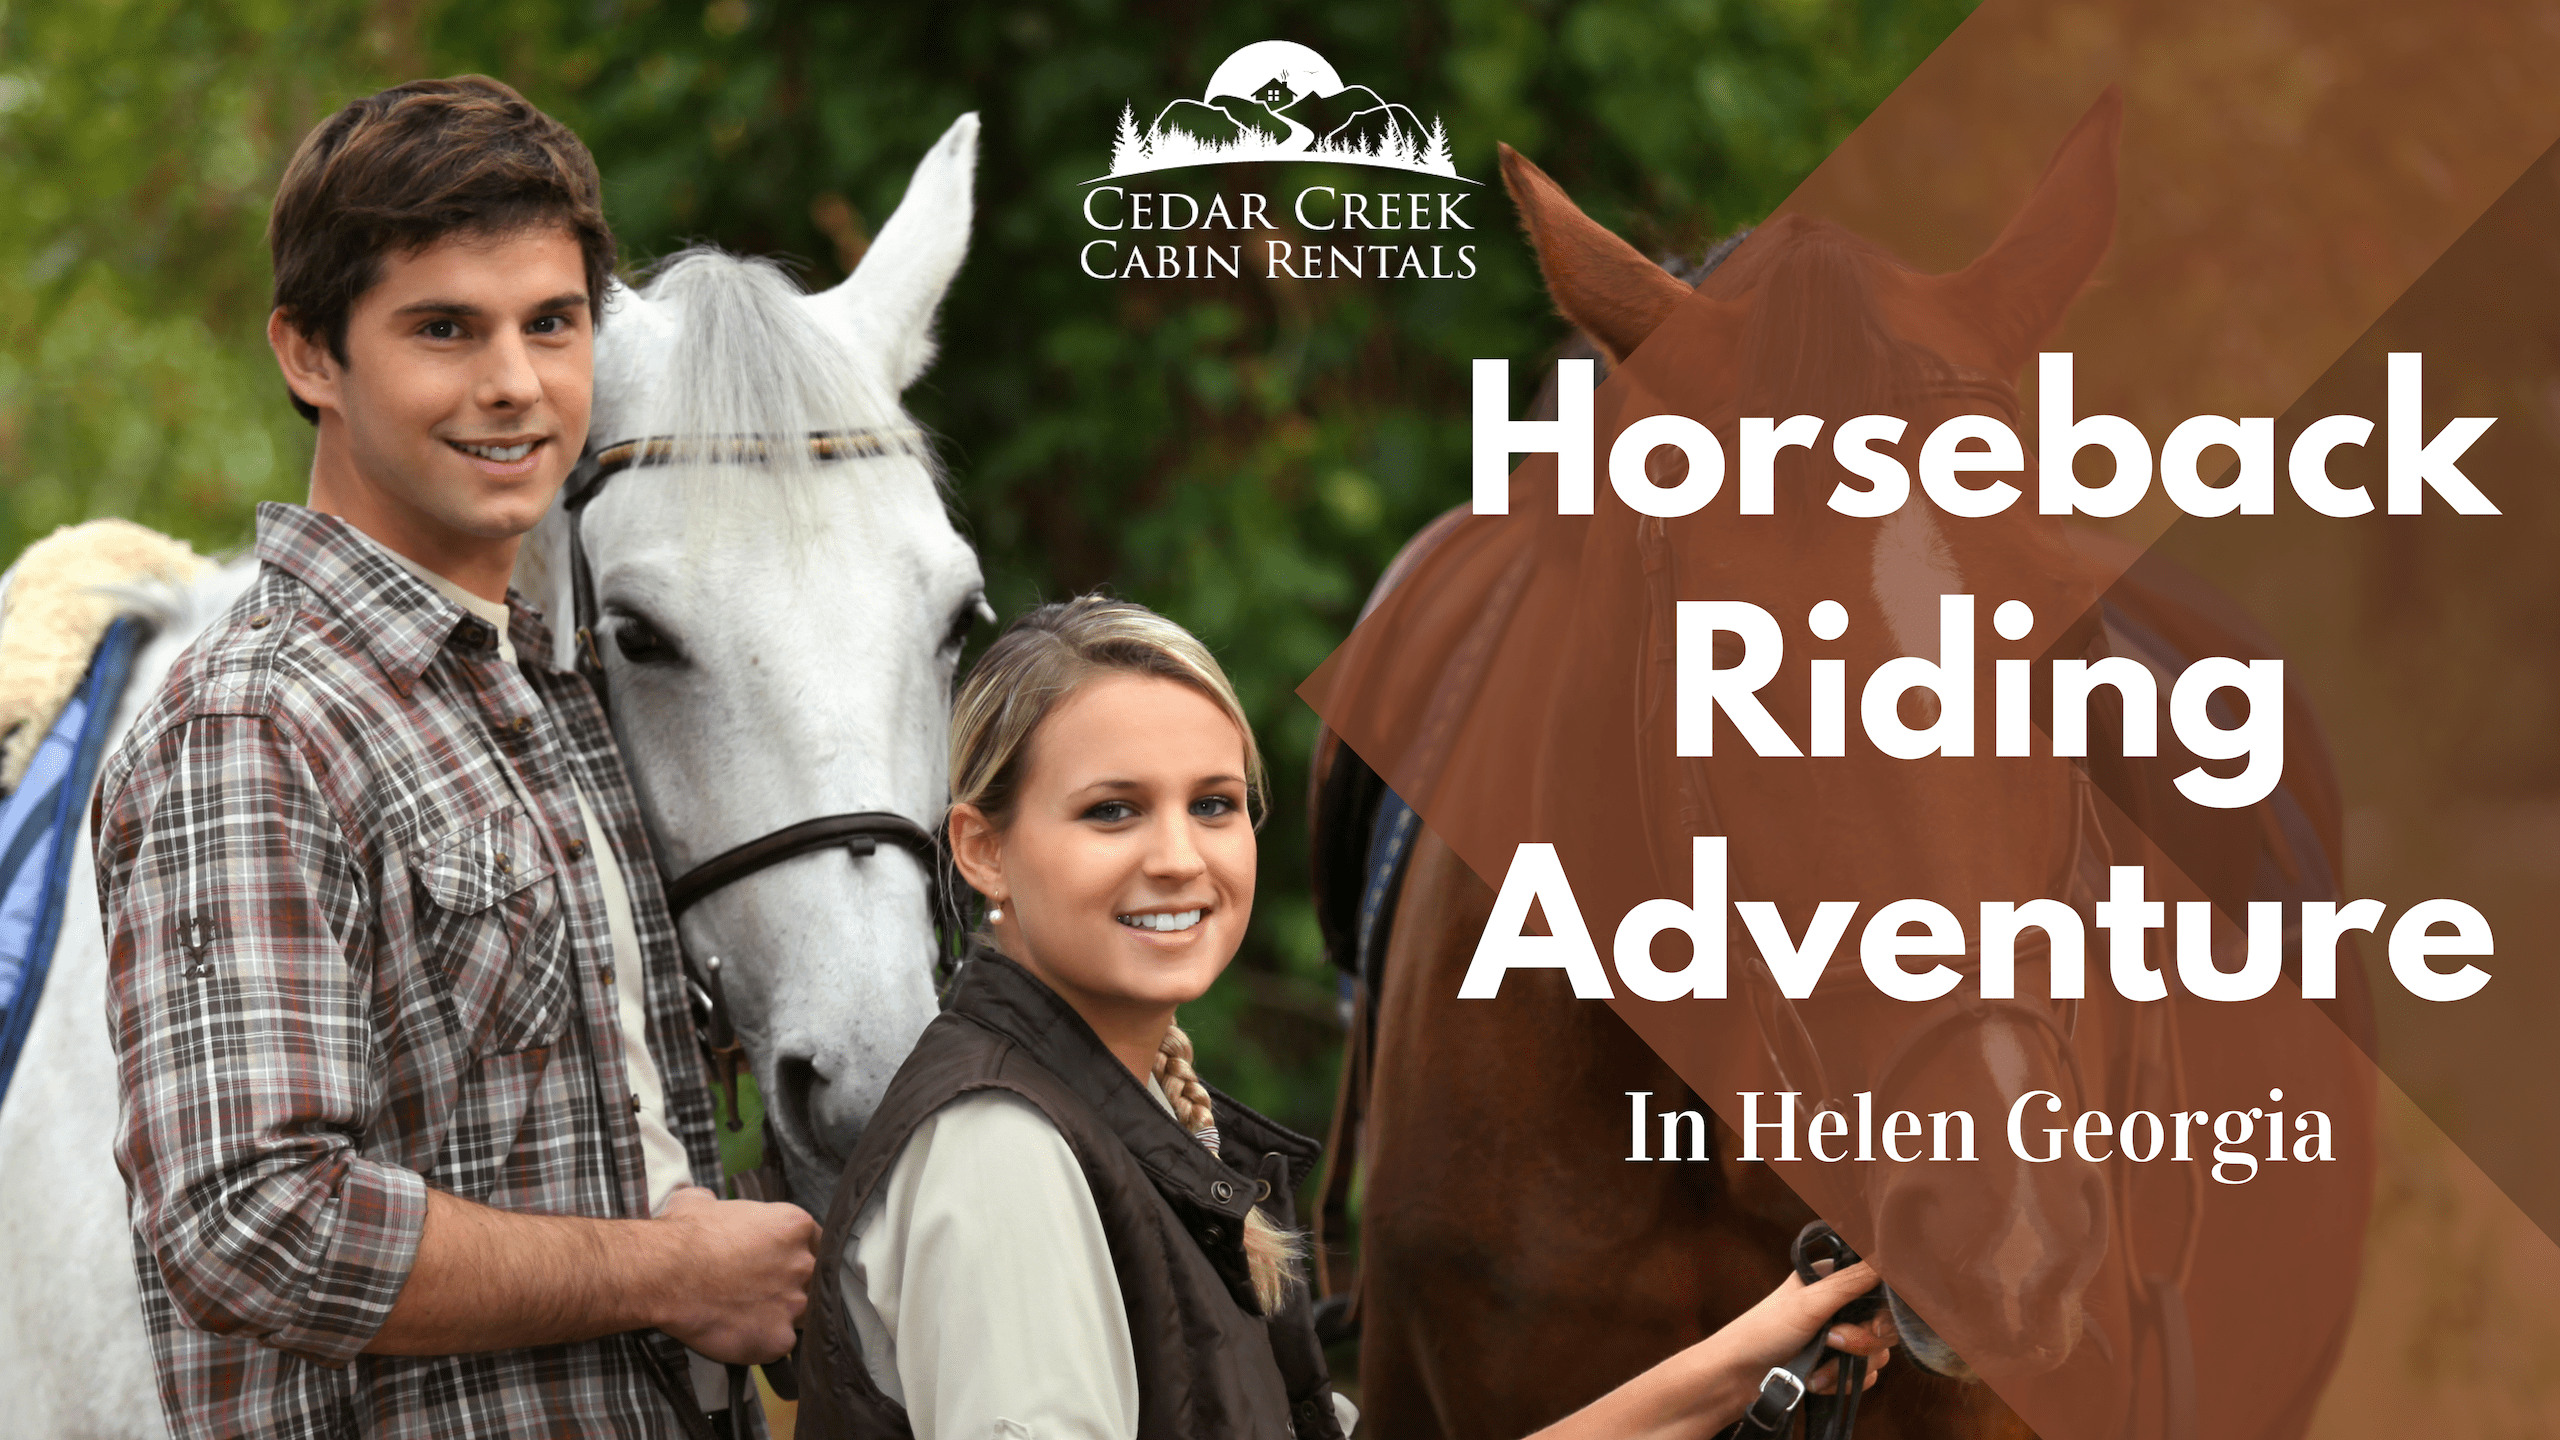 Horseback-Riding-Adventure-Cedar-Creek-Cabin-Rentals-Helen-GA-Blog-Banner